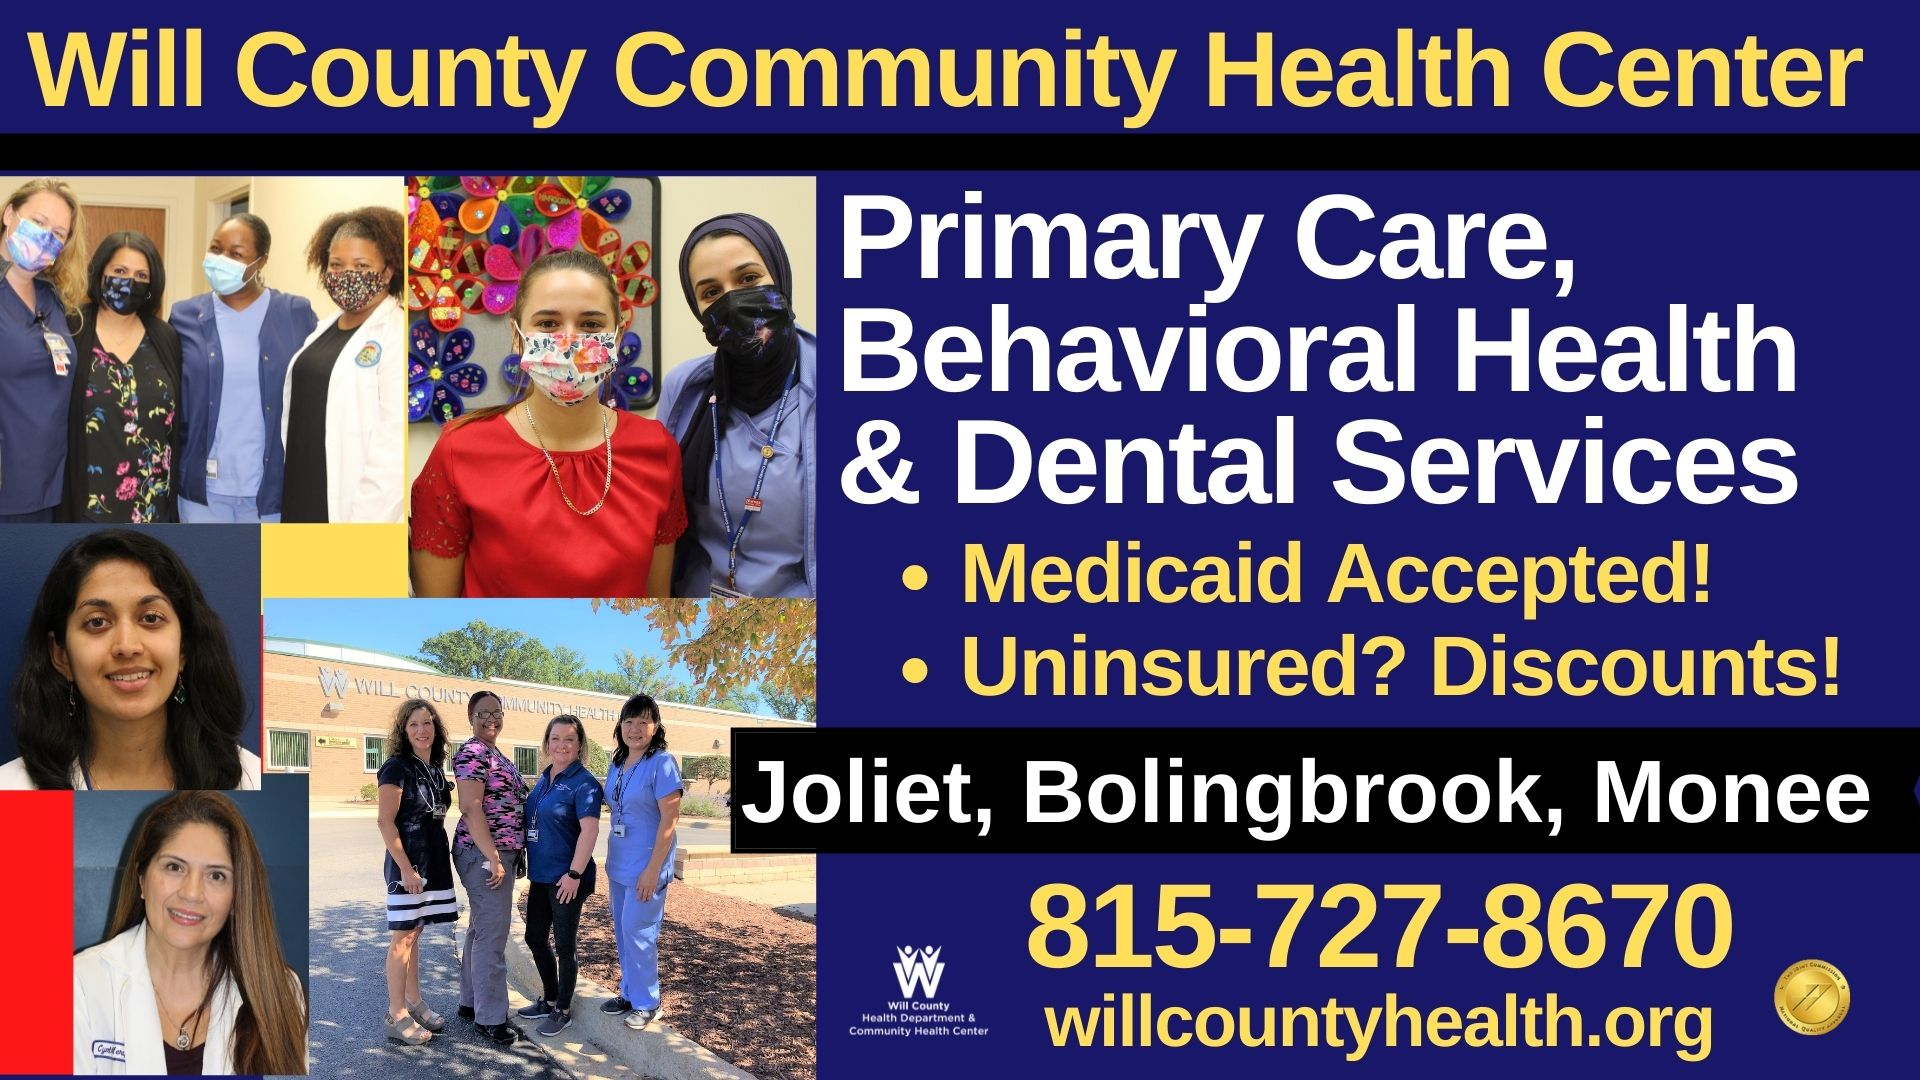 Will County Health Center Primary Care Behavioral Health and Dental Services